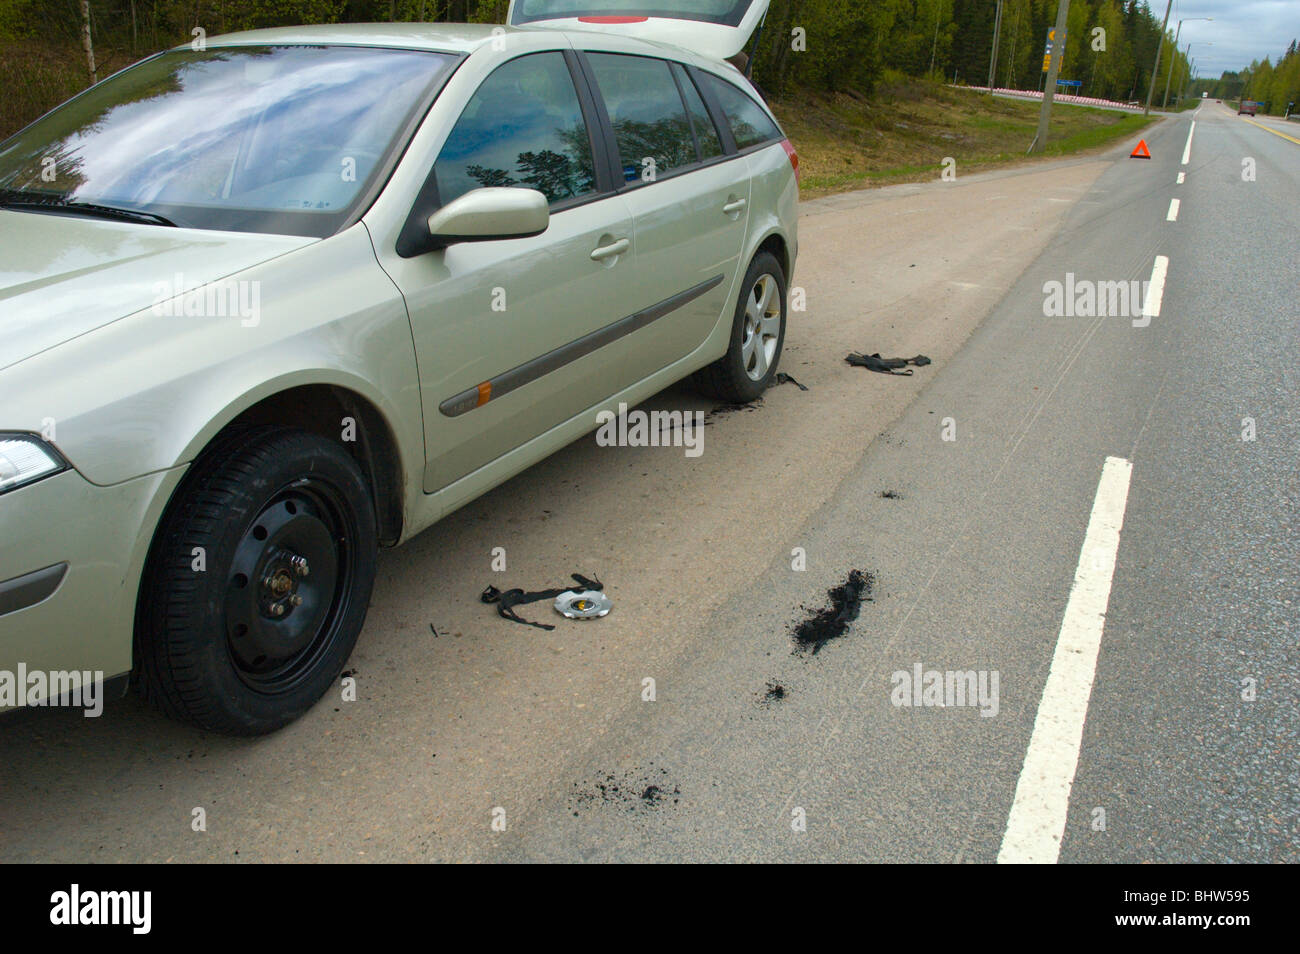 Car with a spare tyre changed after a puncture Finland Europe - Stock Image